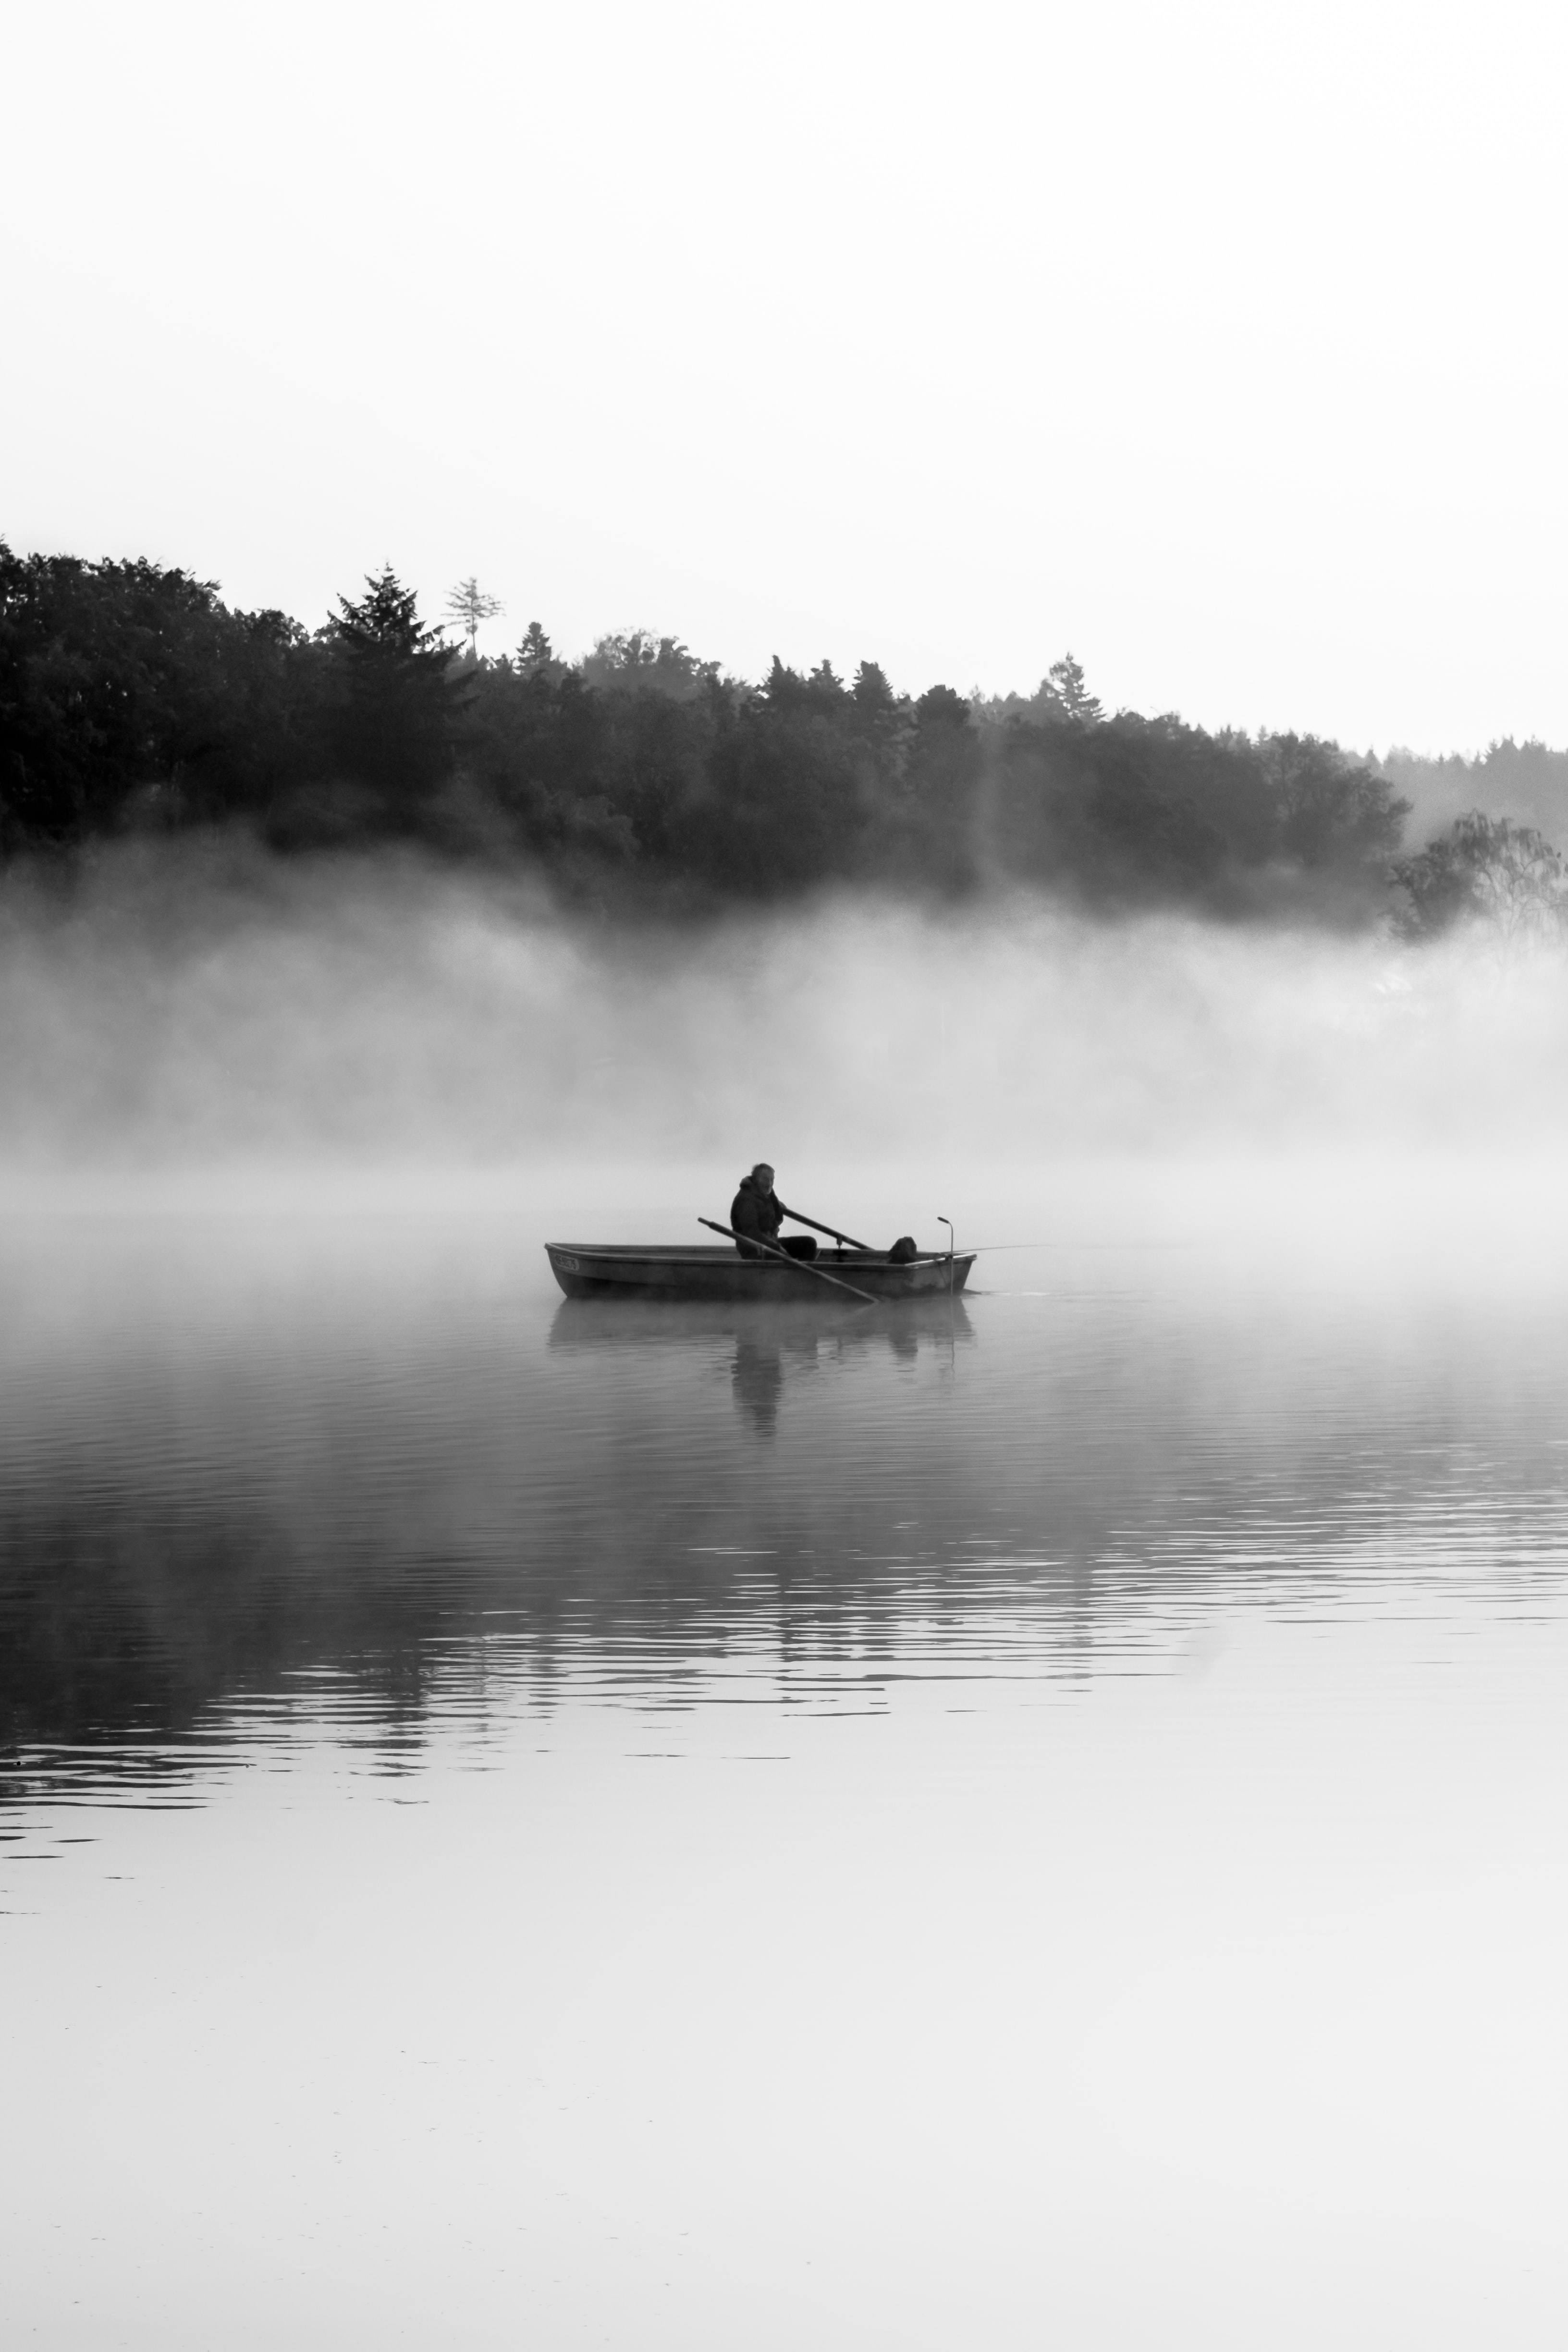 man riding on boat grayscale photo